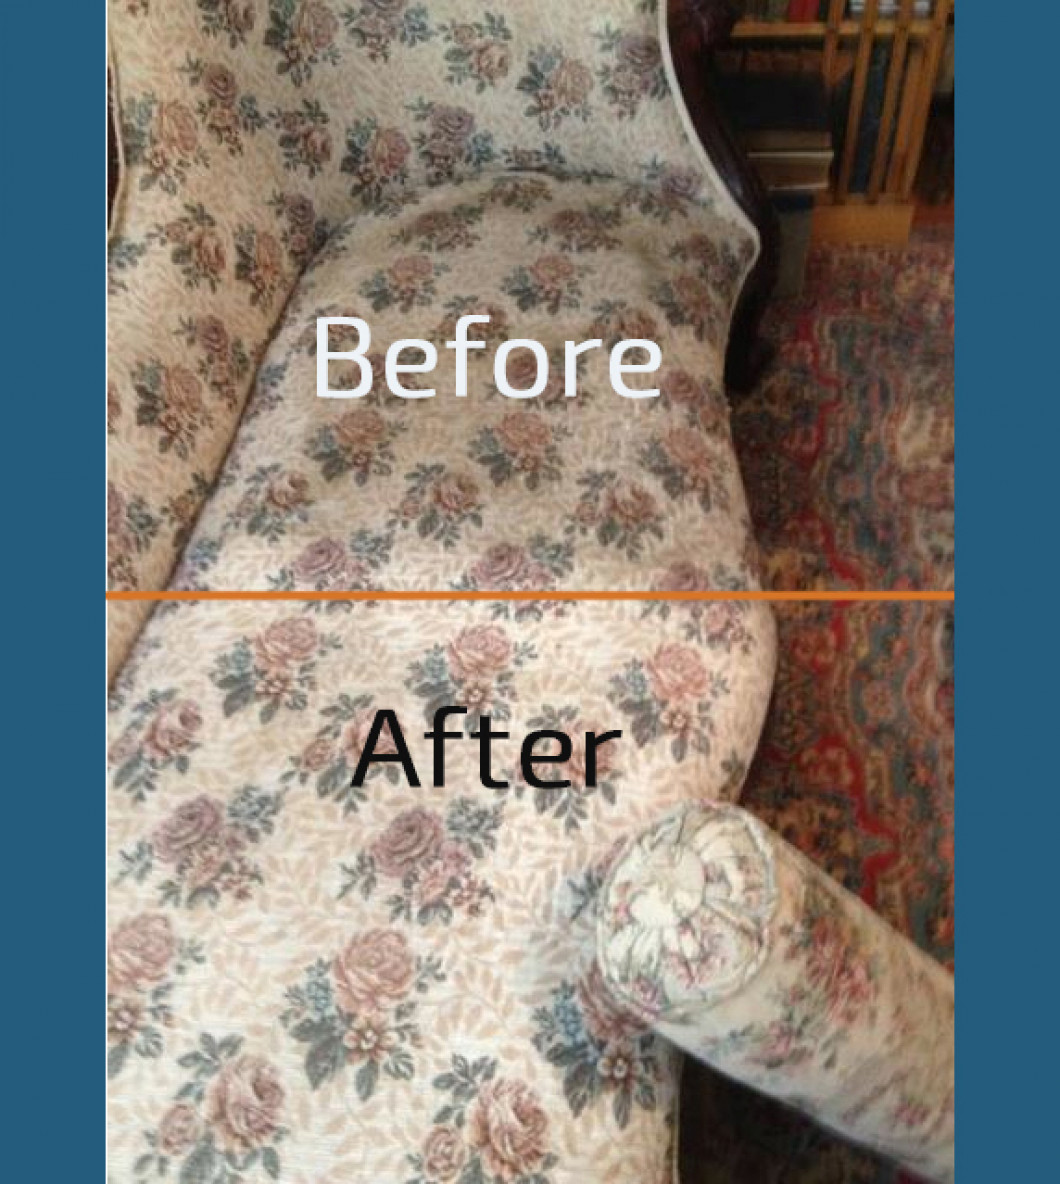 Upholstery Cleaning in Morrisville & Yardley, PA